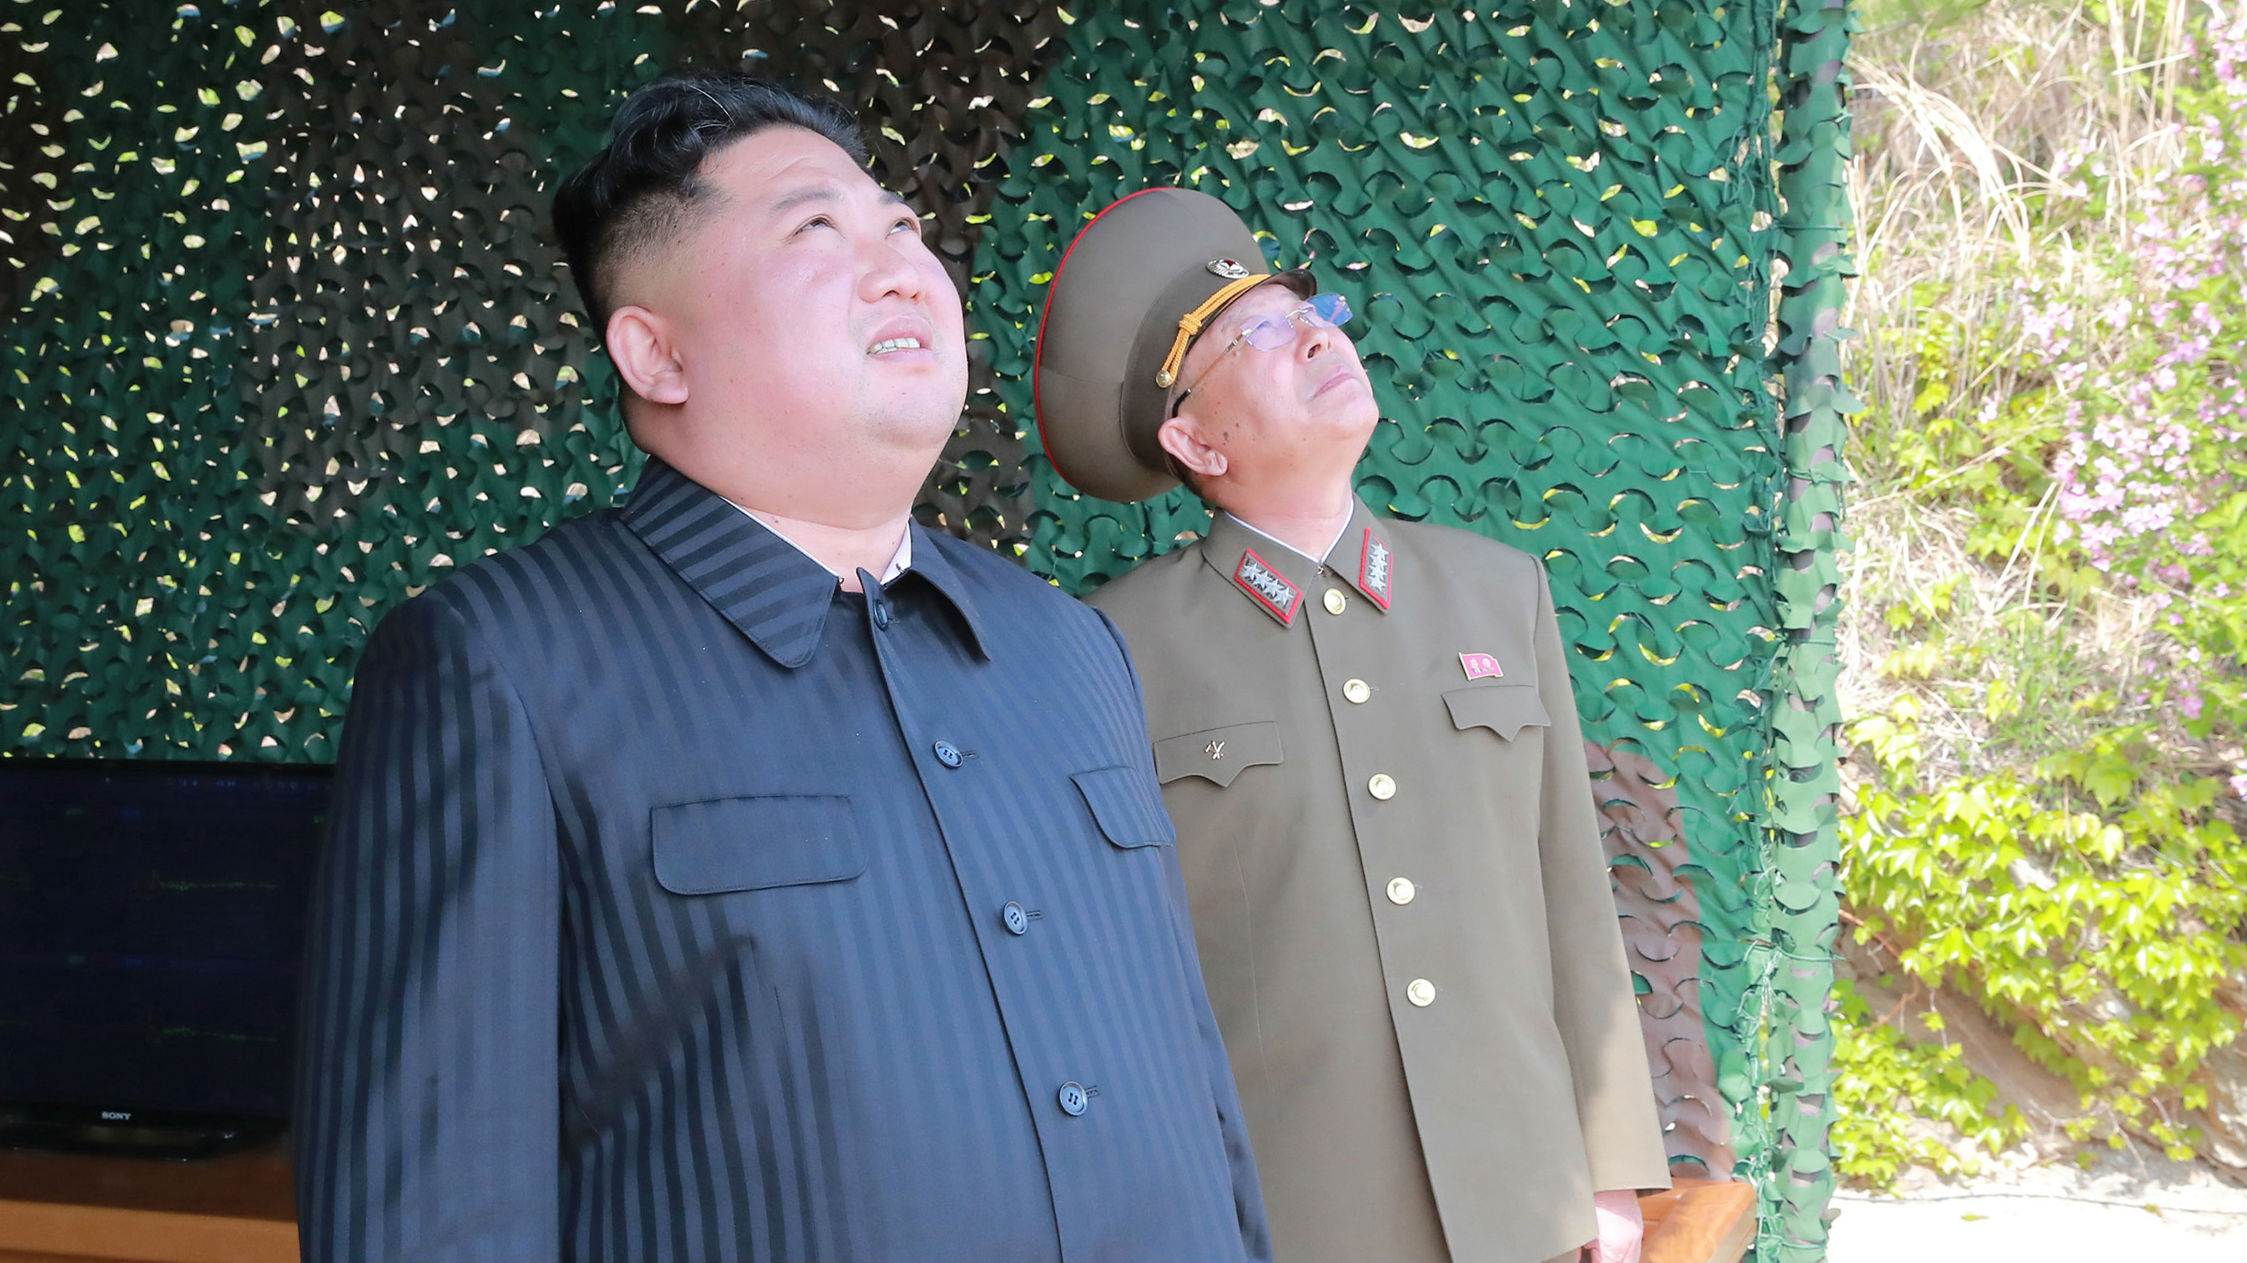 Kim Jong Un witnessed the missile launch, North Korean state media said yesterday. (Photo / via AP)